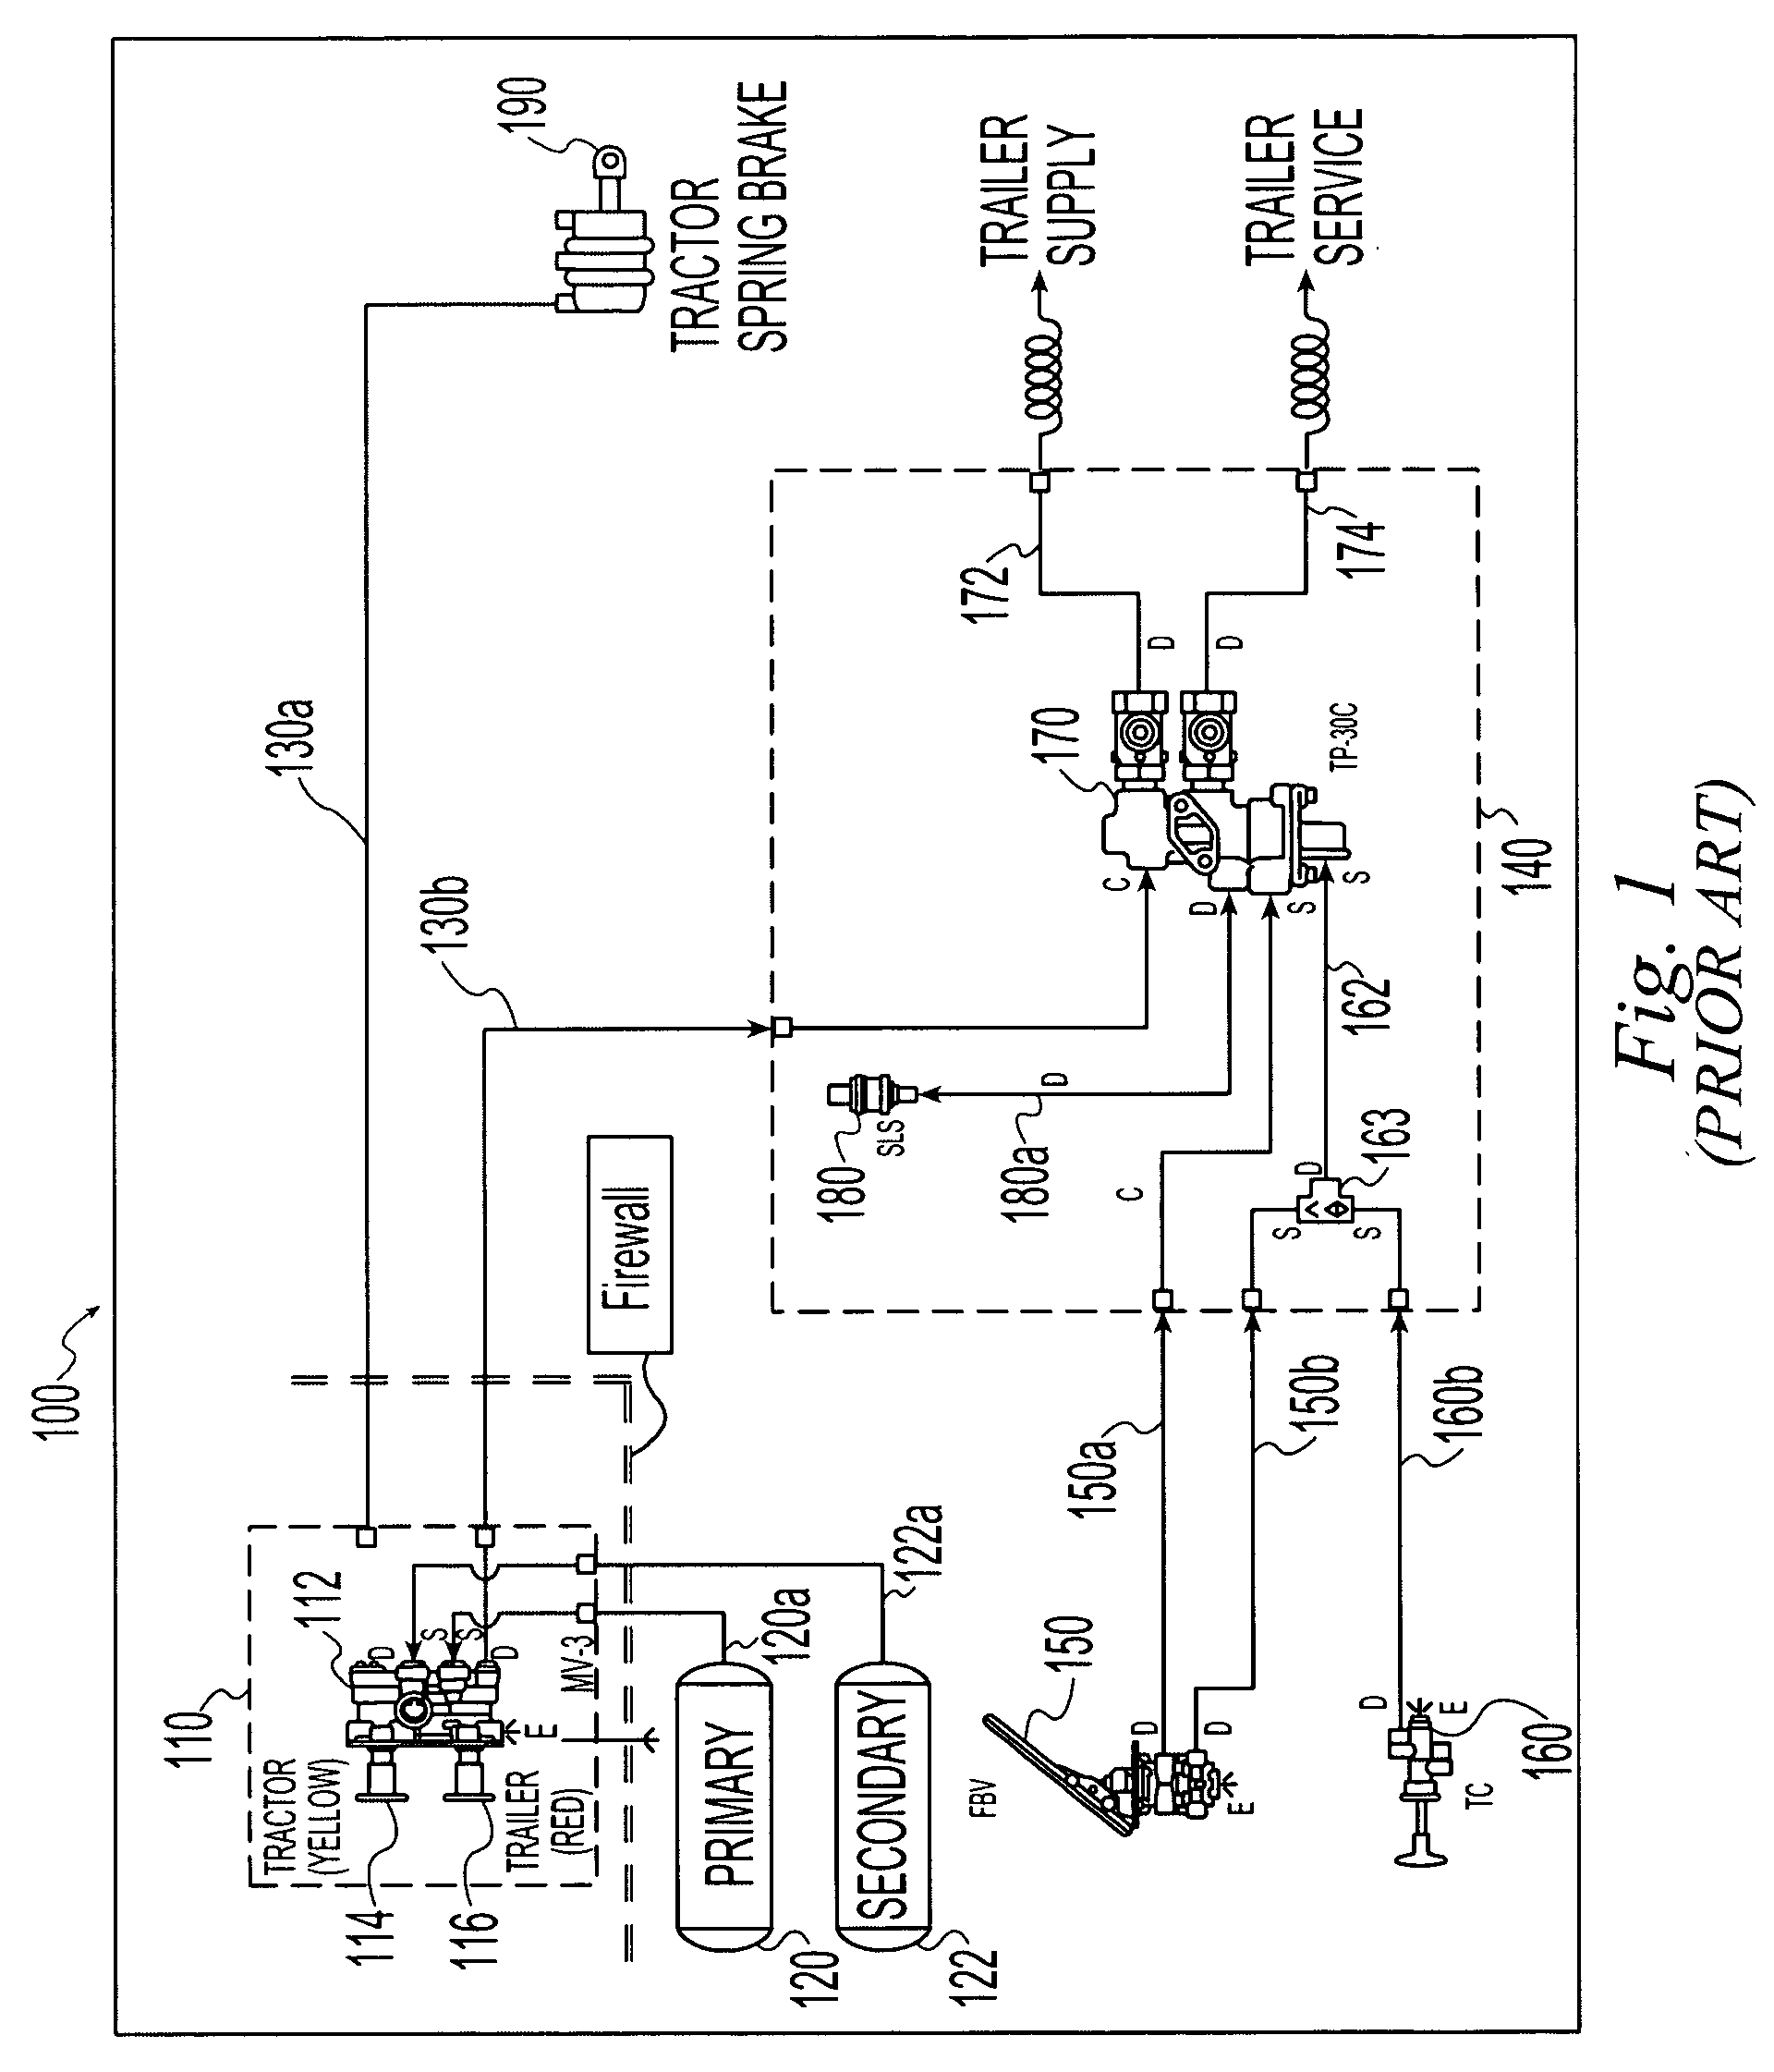 wabco abs wiring diagram plug 16 7 fearless wonder de \u2022wabco abs wiring diagram plug wiring diagram rh 061 siezendevisser nl kenworth t800 wiring diagram semi trailer wiring diagram